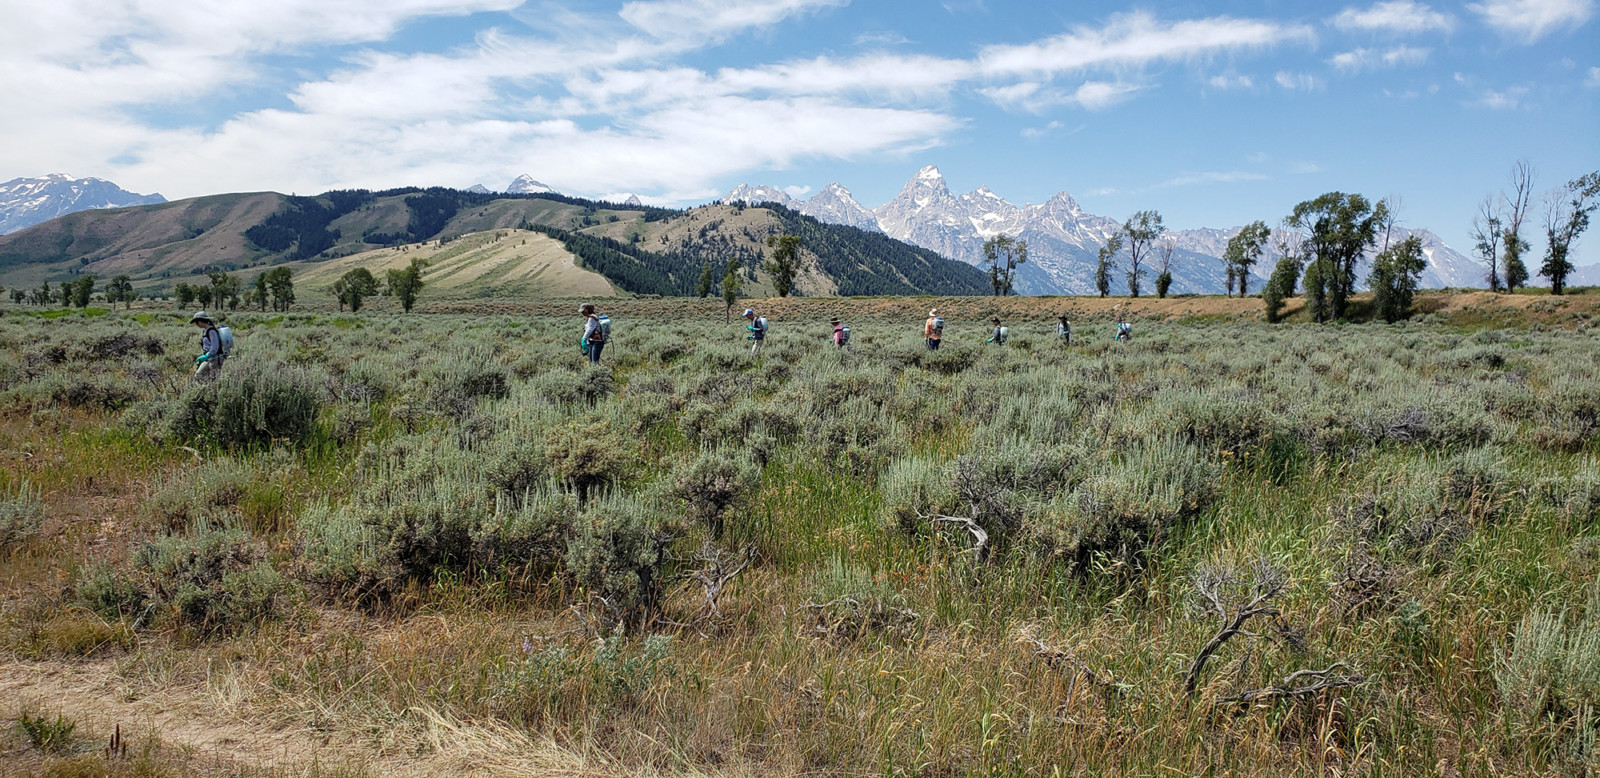 Gros Ventre River Spray Days 2018 - Invasive Species Control